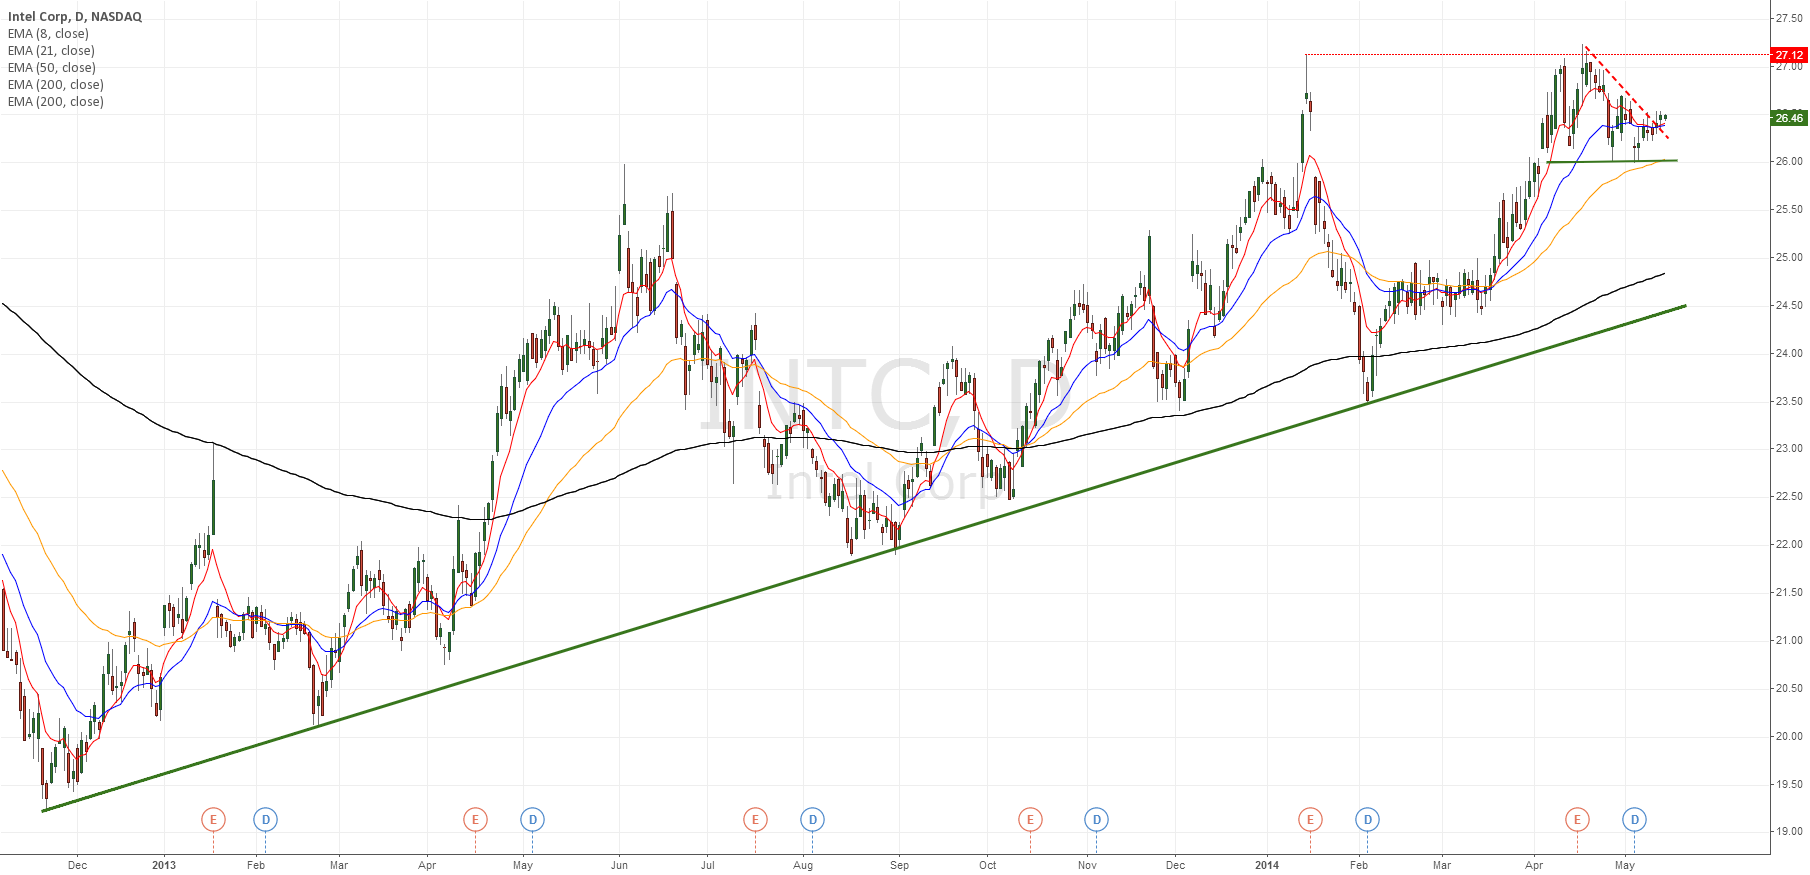 INTC wedge in strong uptrend